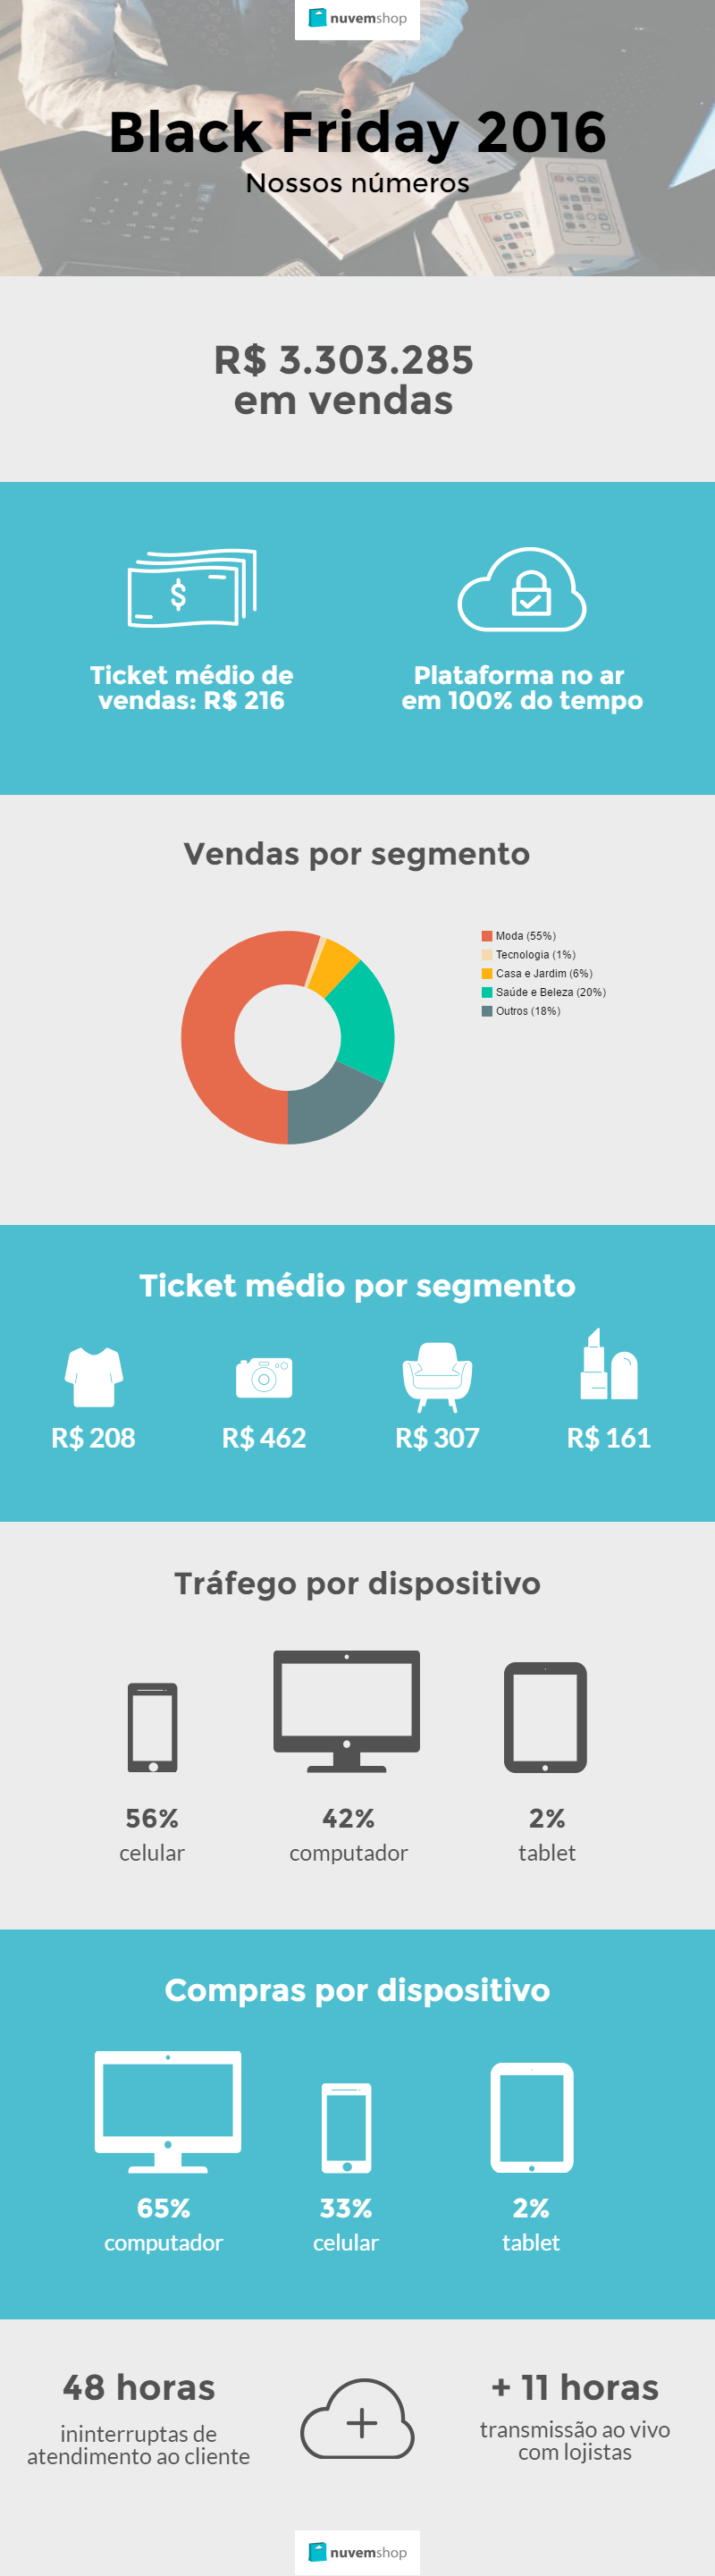 Infográfico Black Friday 2016